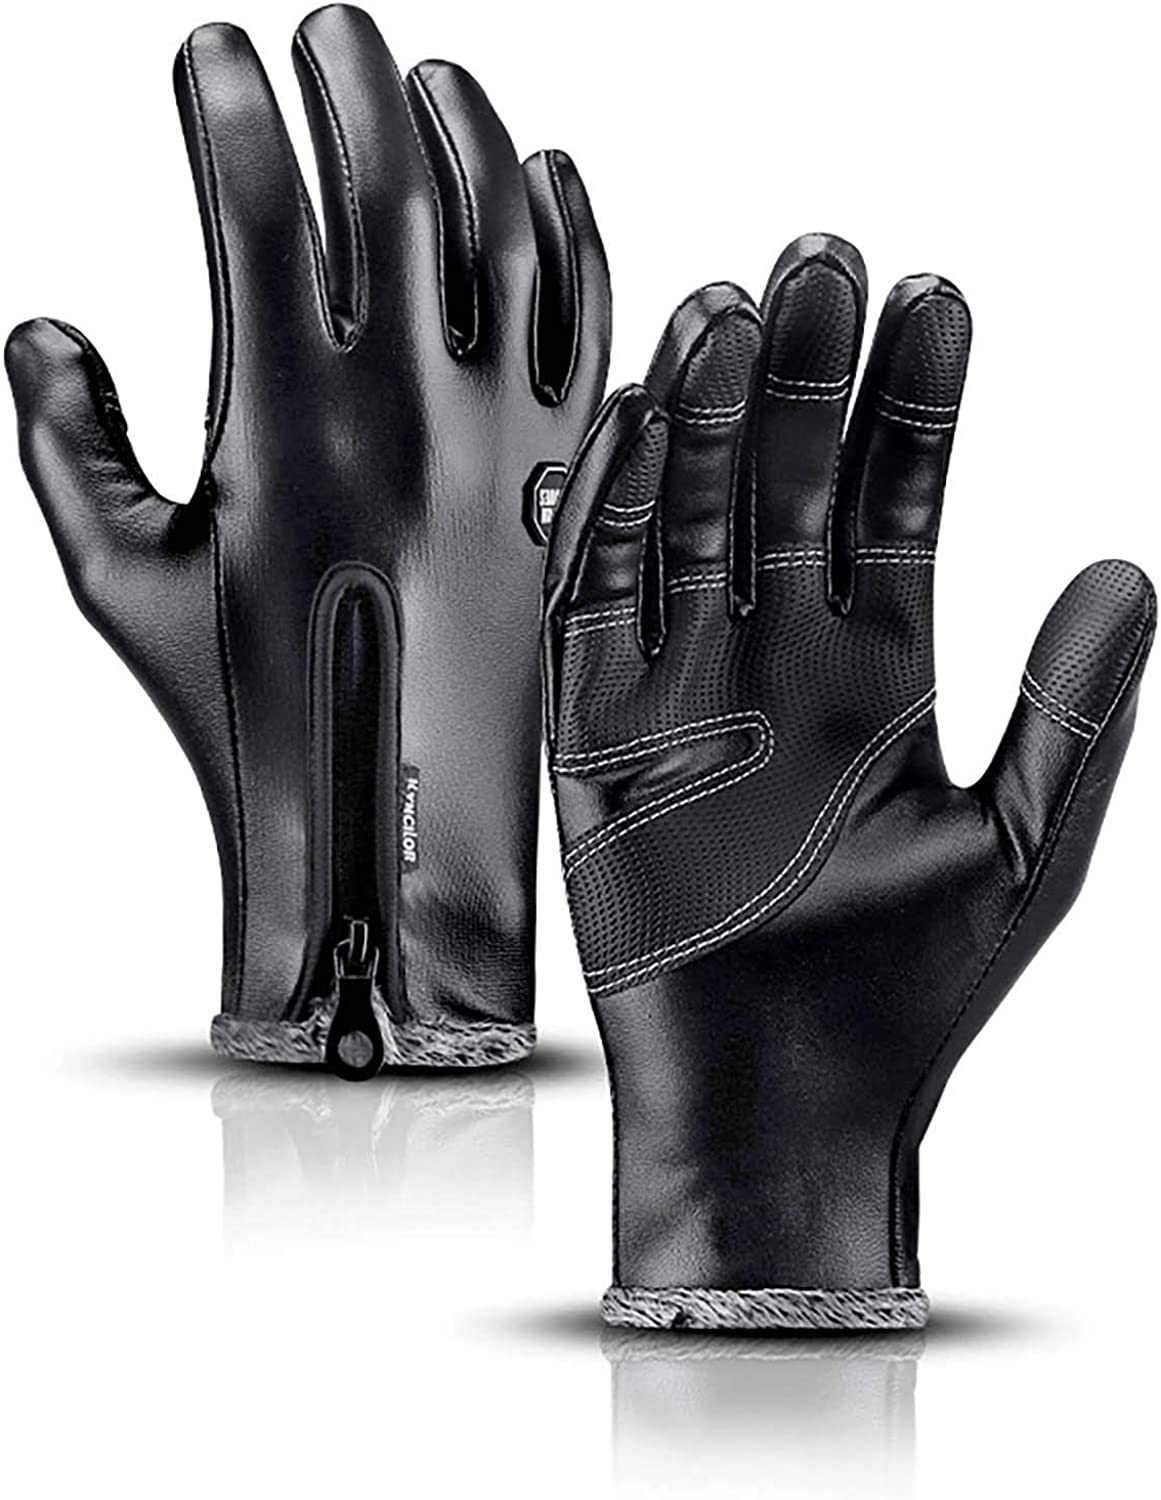 Newbeeler Black Leather Gloves for Men Steampunk Gloves Winter Riding Horse Riding Hiking Touchscreen Waterproof Cold Weather Gloves Hand Warmer Gloves